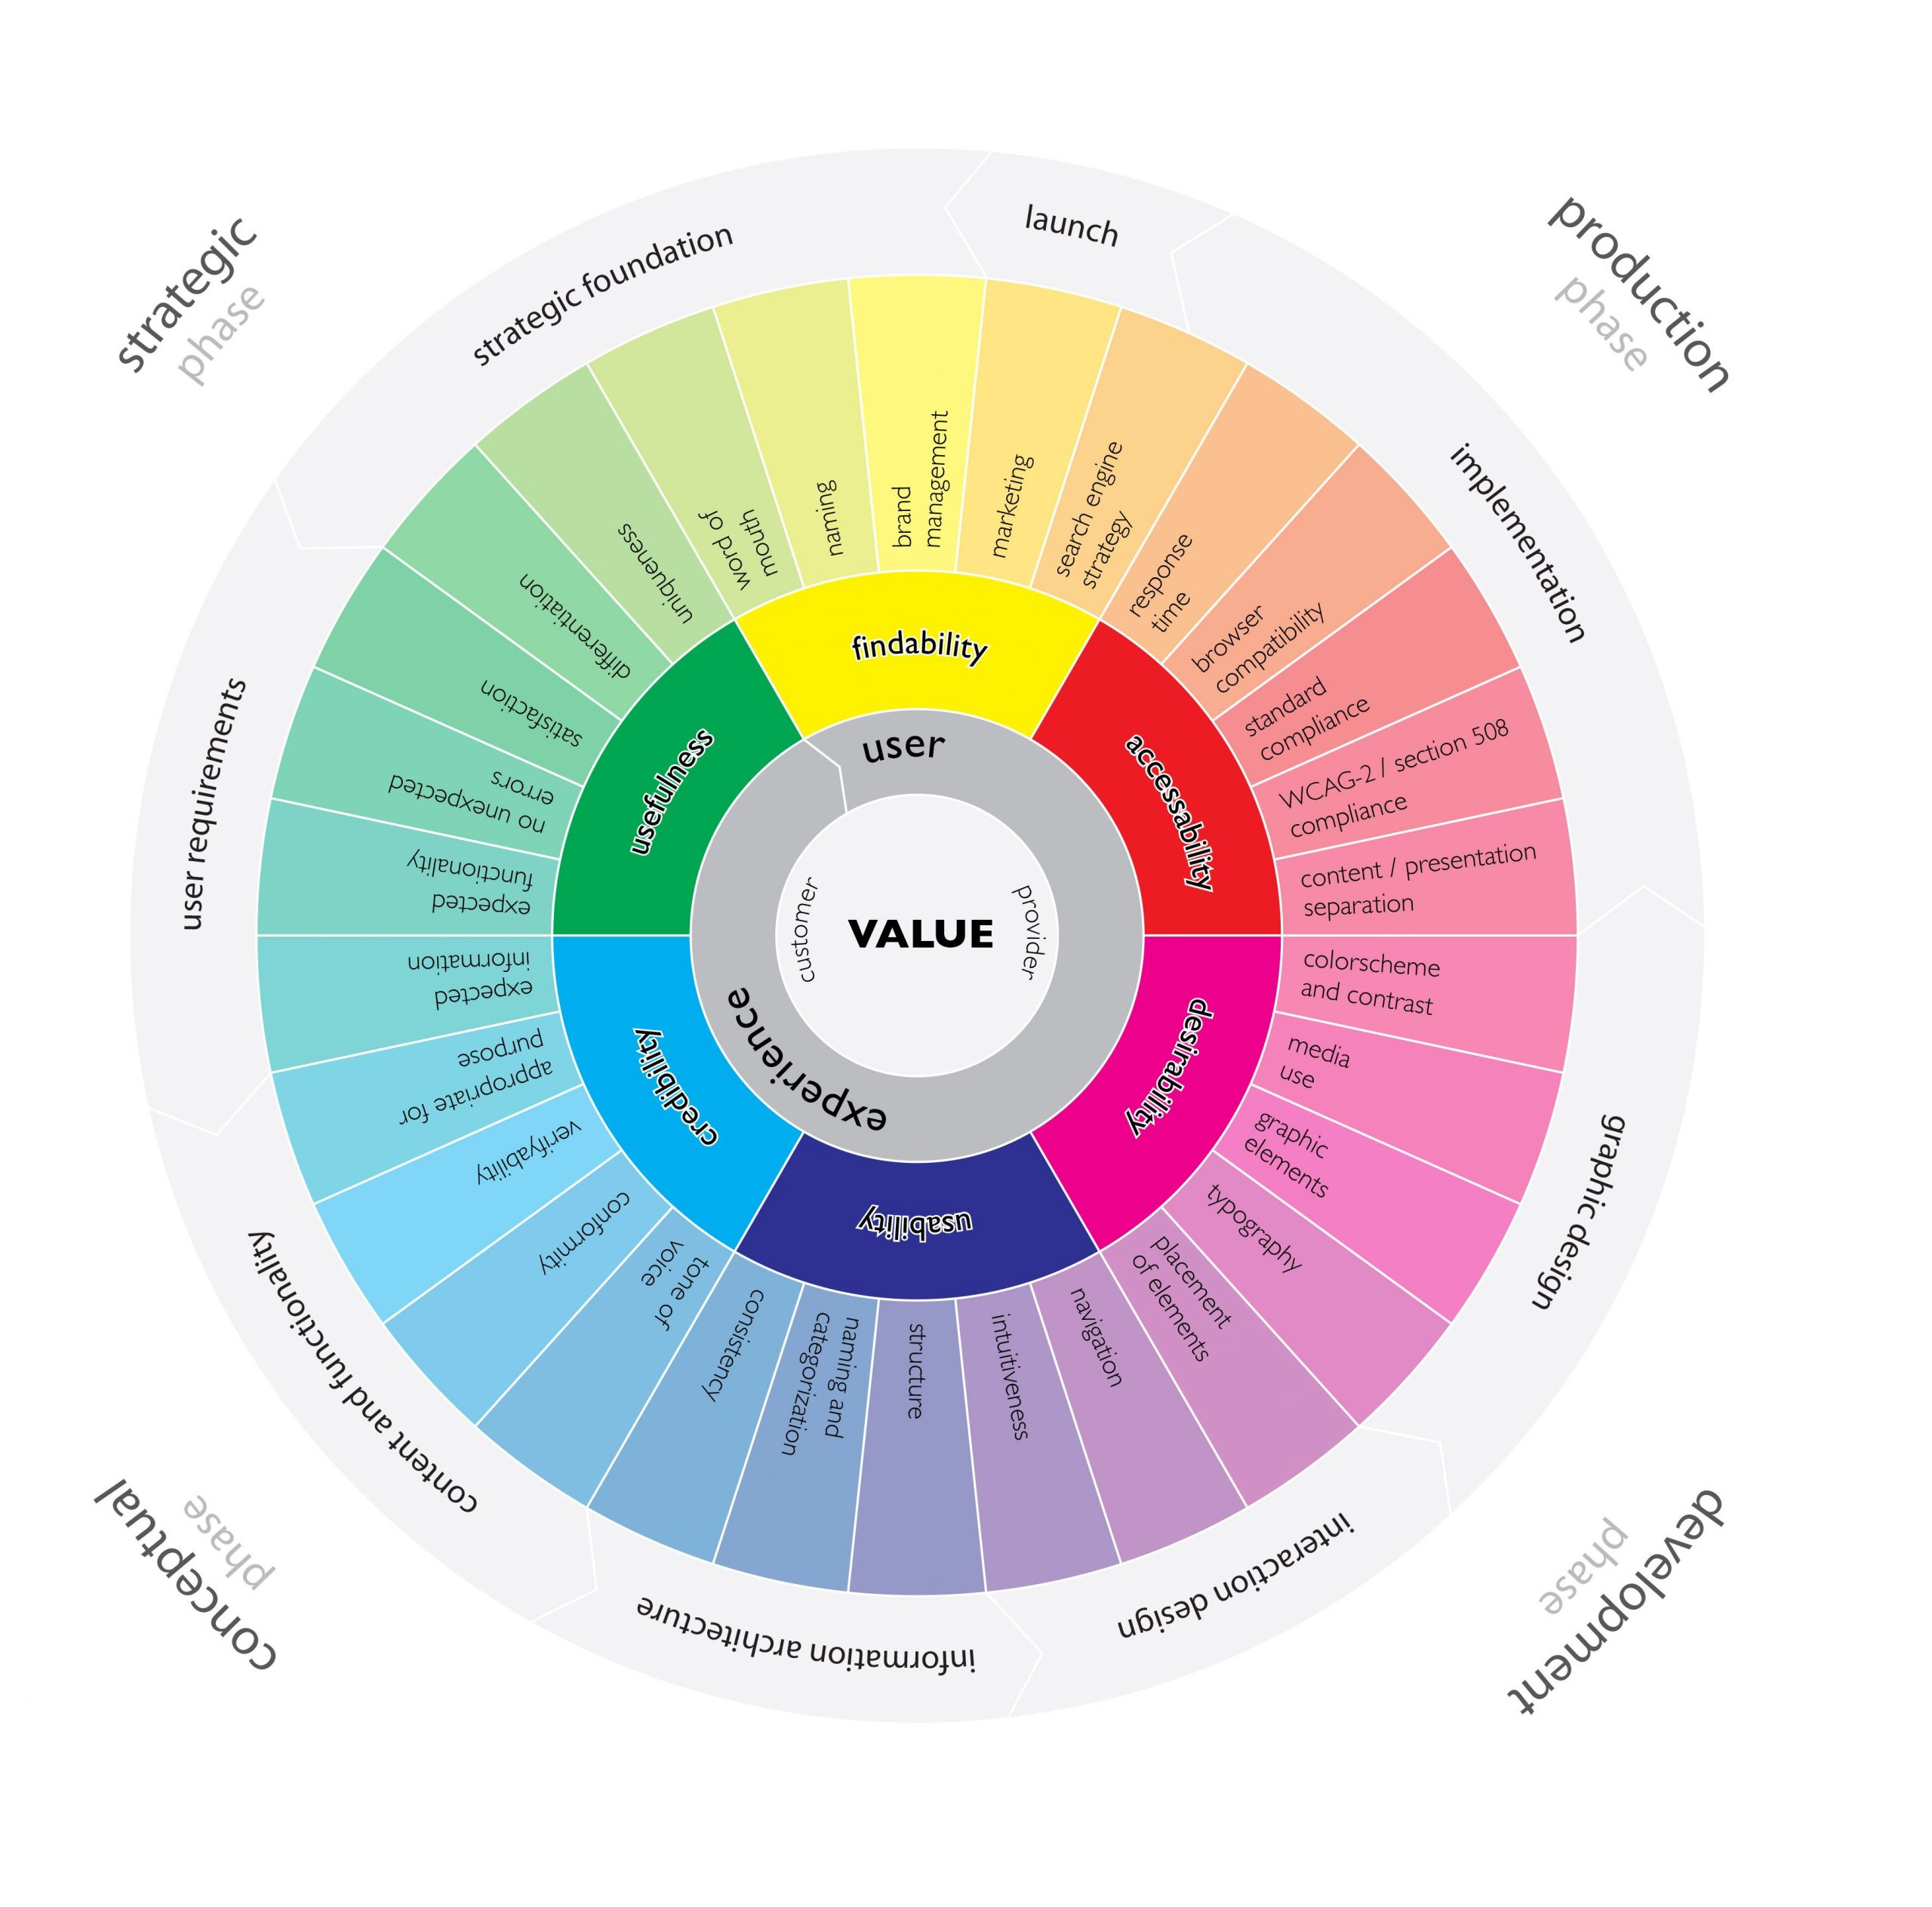 UX - user experience wheel